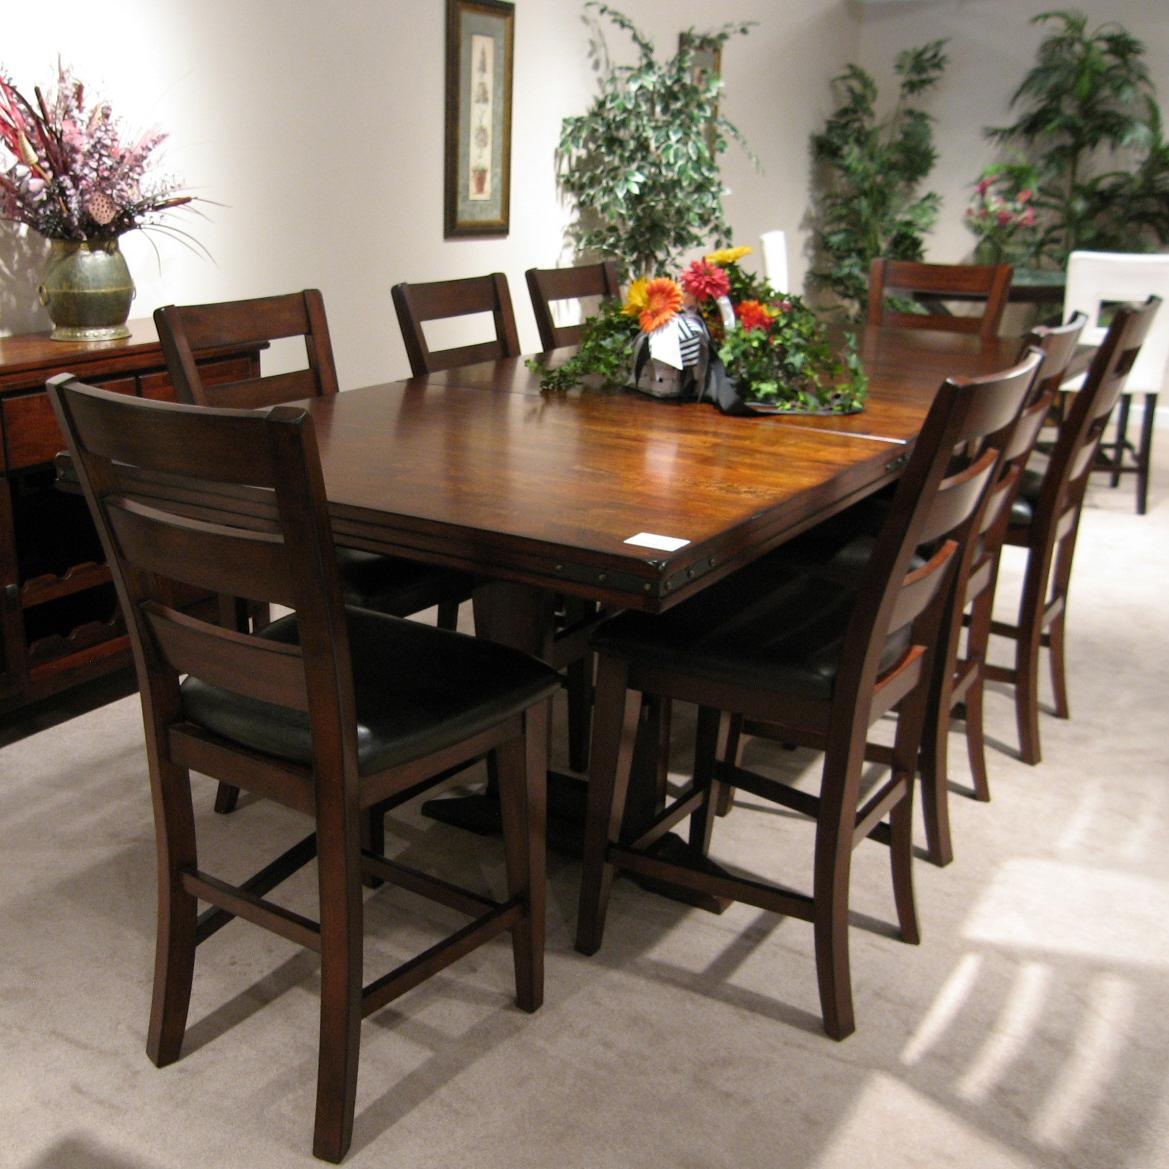 Coventry Double Trestle Pub Table with 2 Removable 18 Inch